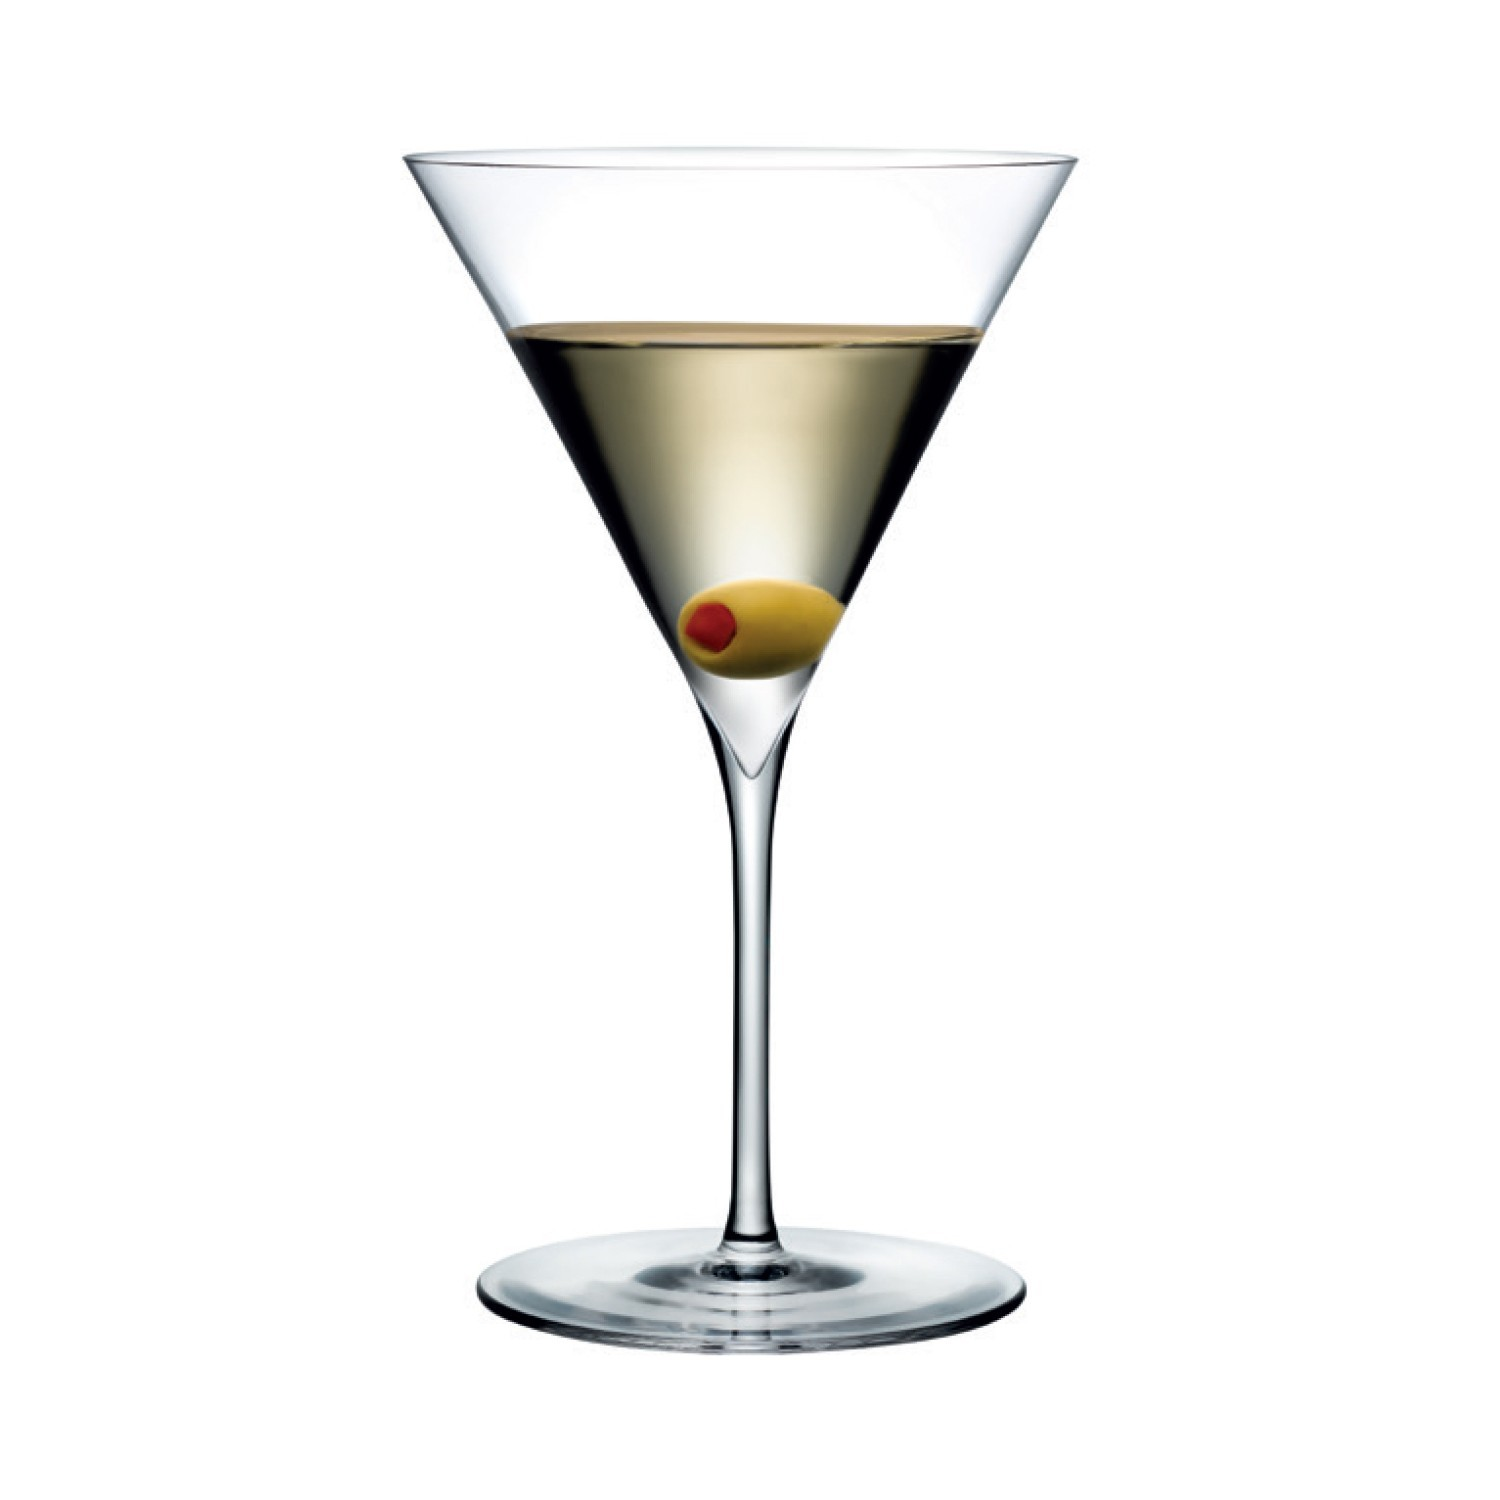 Made To Order 4 1/2 T x 7 1/2 H Dimple 12 Oz. Martini/Case of 8